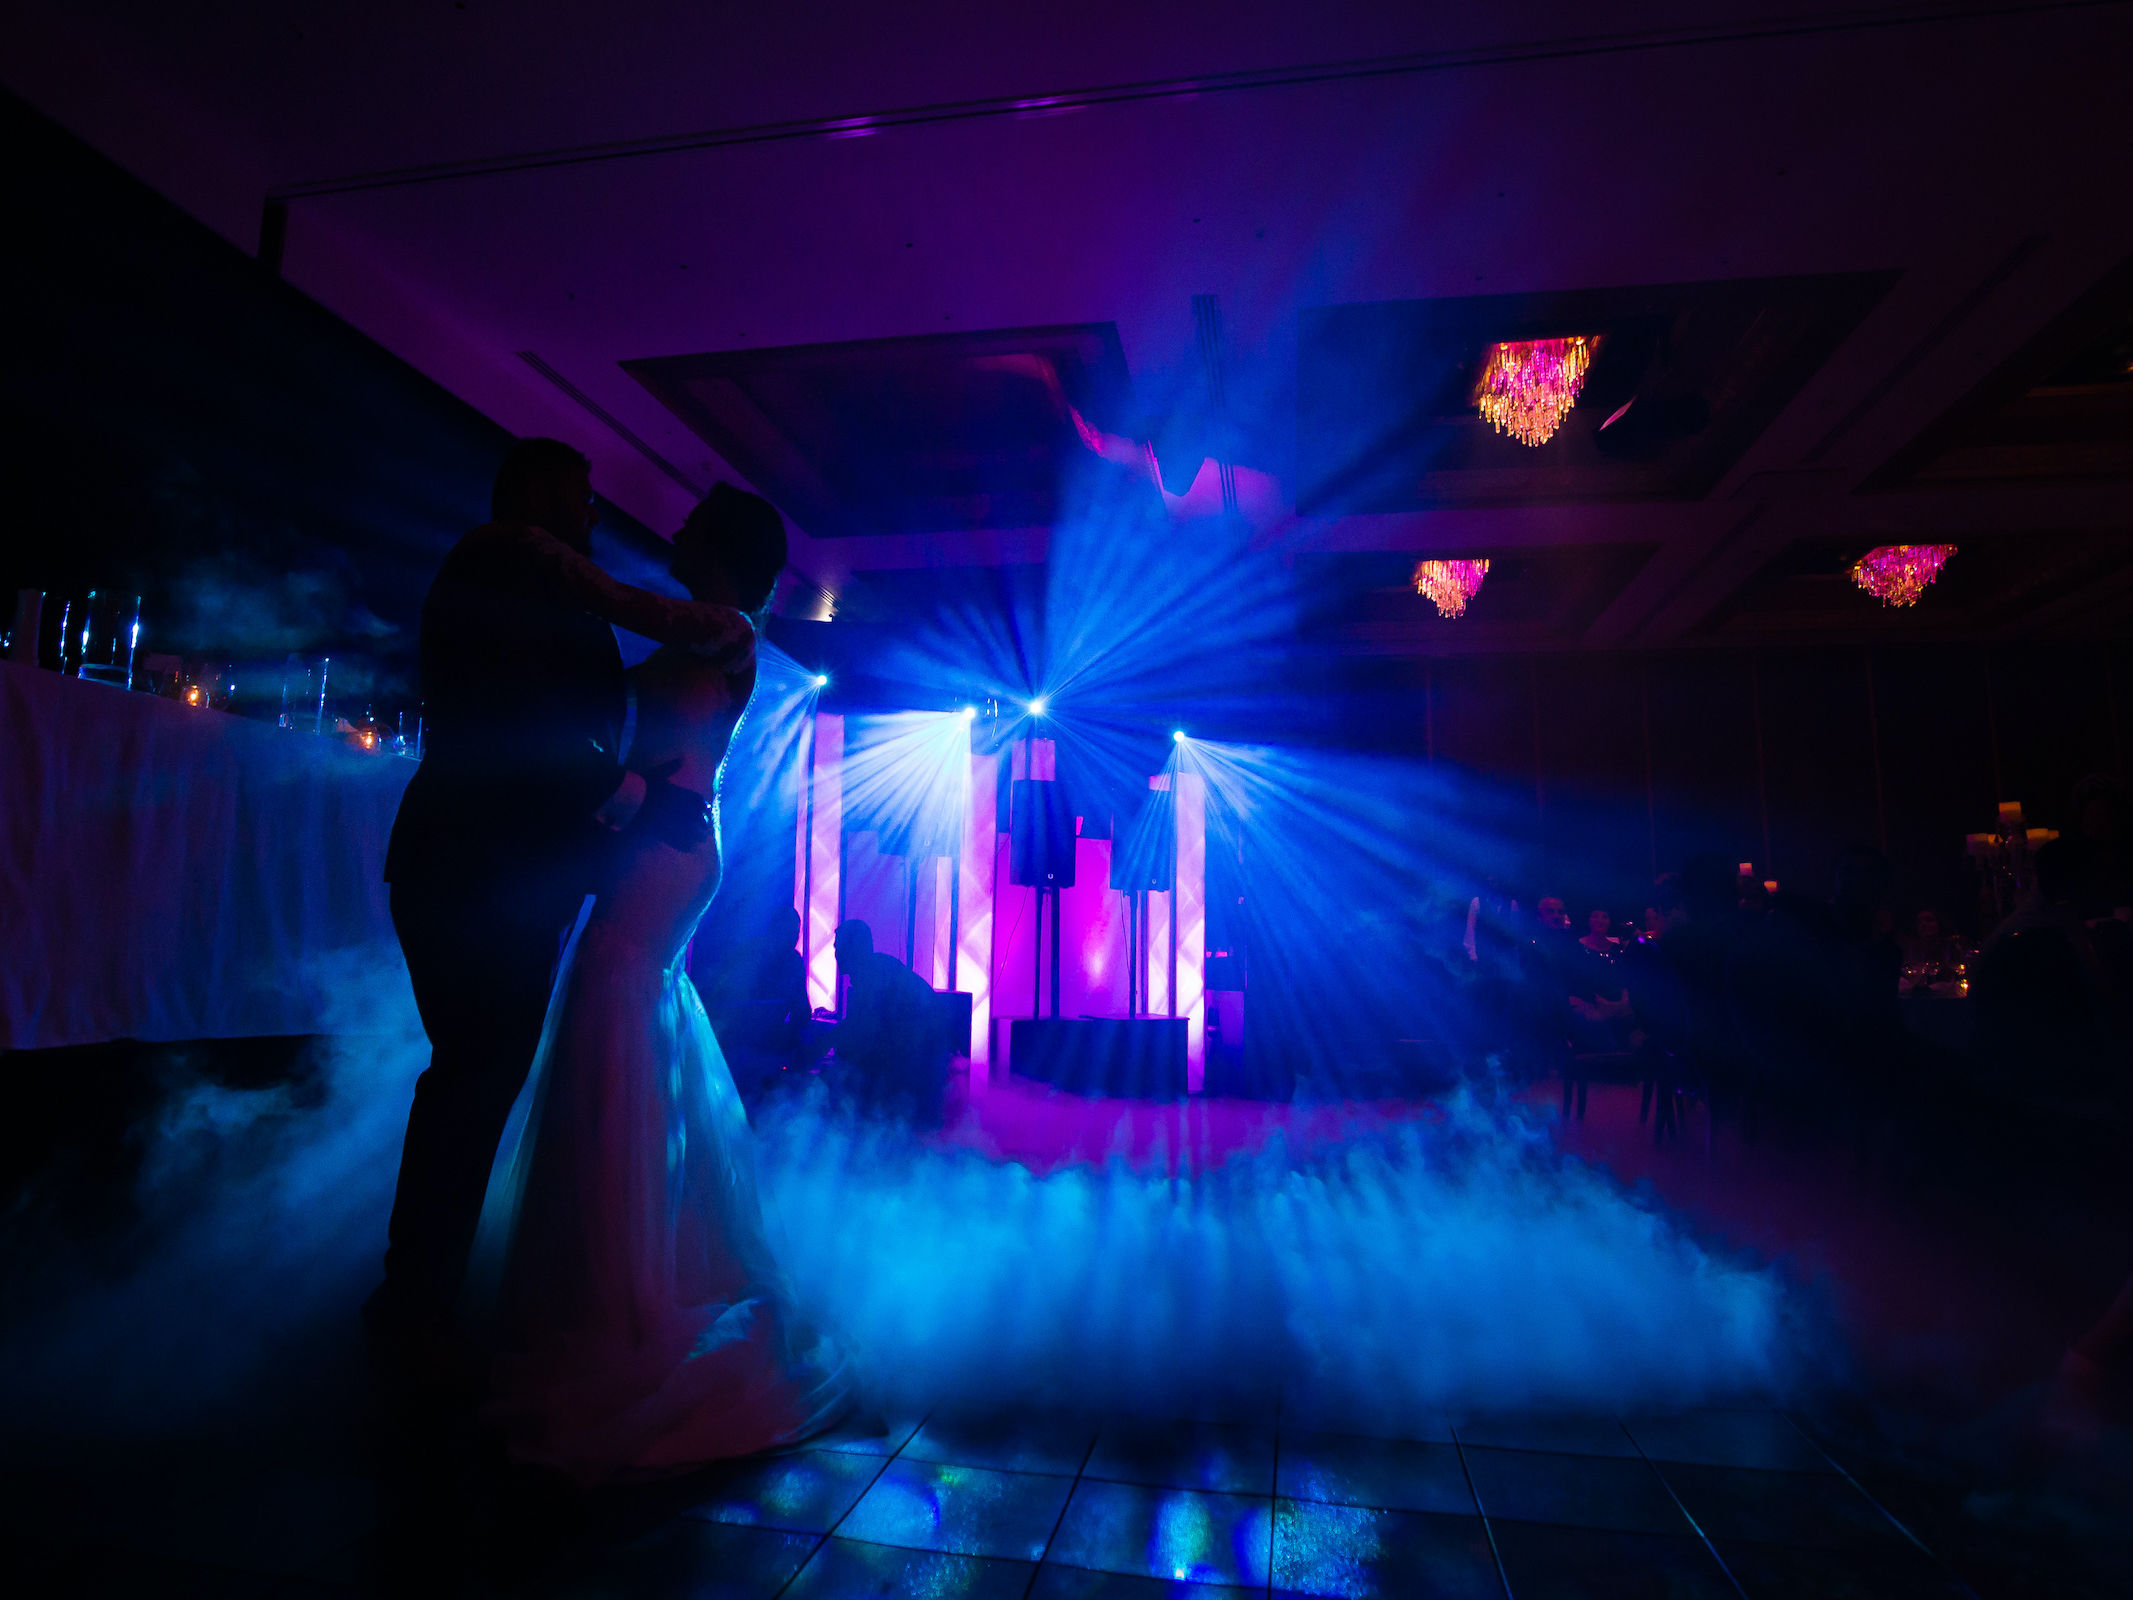 Lasershow | Hochzeit | Event | Business | Messe | Laser | Lichtshow | Outdoor | Beamshow | Lichttechnik | Indoor | Lightshow | Bühnenshow | Präsentation | Business | Anfragen | Buchen | Mieten